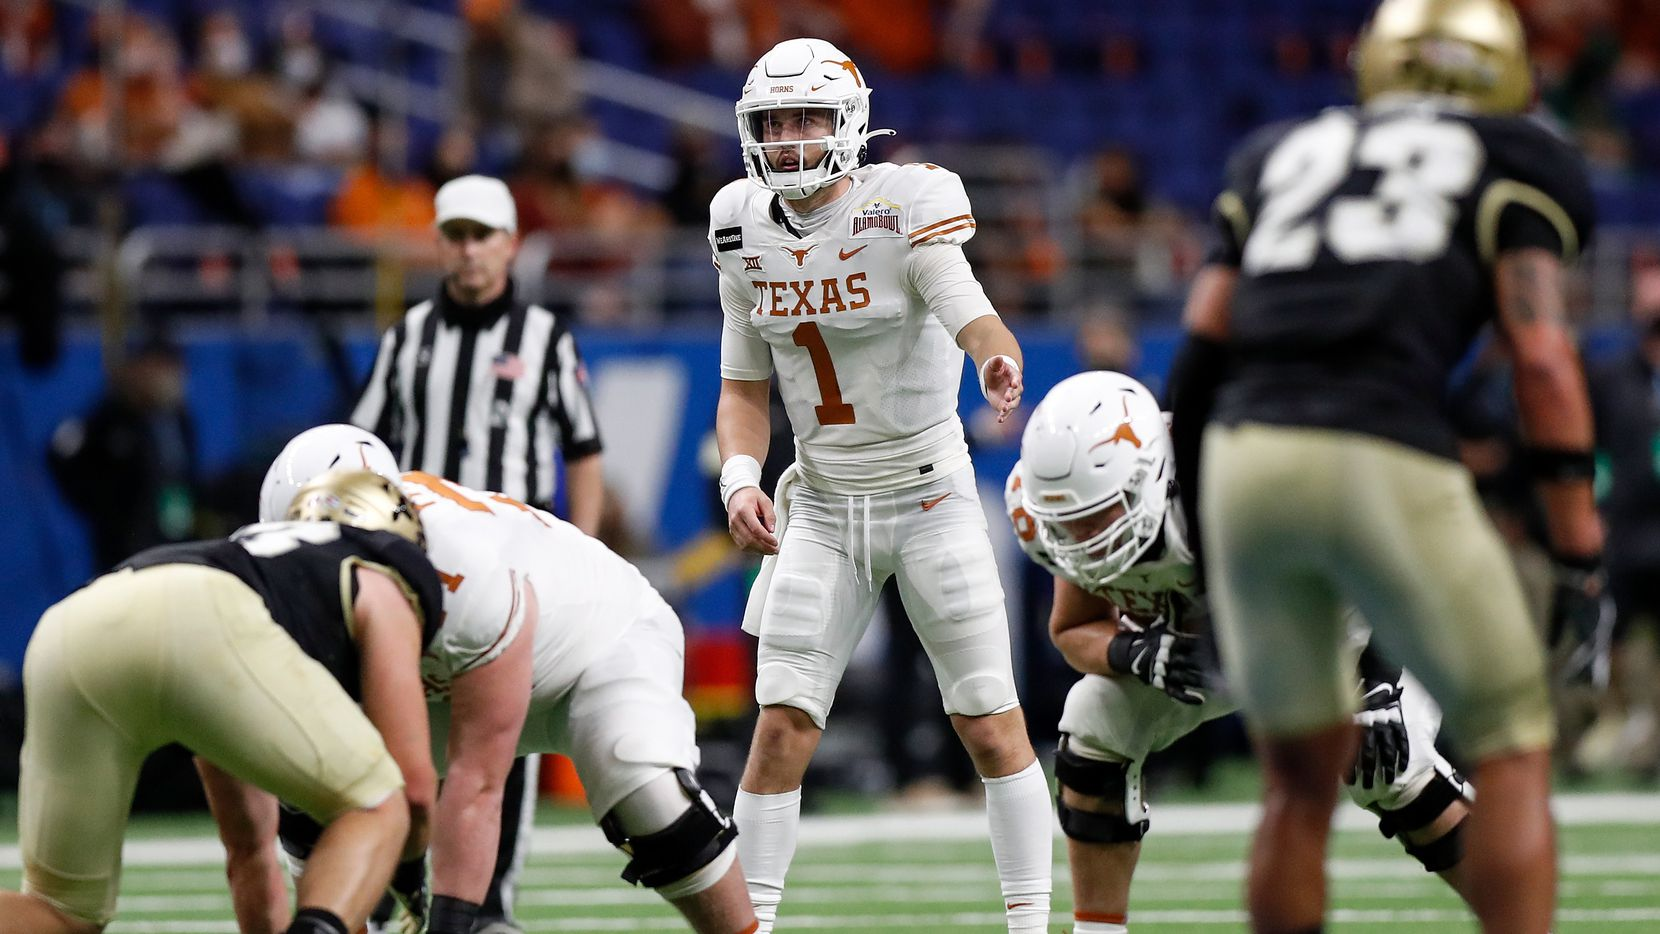 Hudson Card #1 of the Texas Longhorns signals at the line of scrimmage in the fourth quarter against the Colorado Buffaloes during the Valero Alamo Bowl at the Alamodome on December 29, 2020 in San Antonio, Texas.